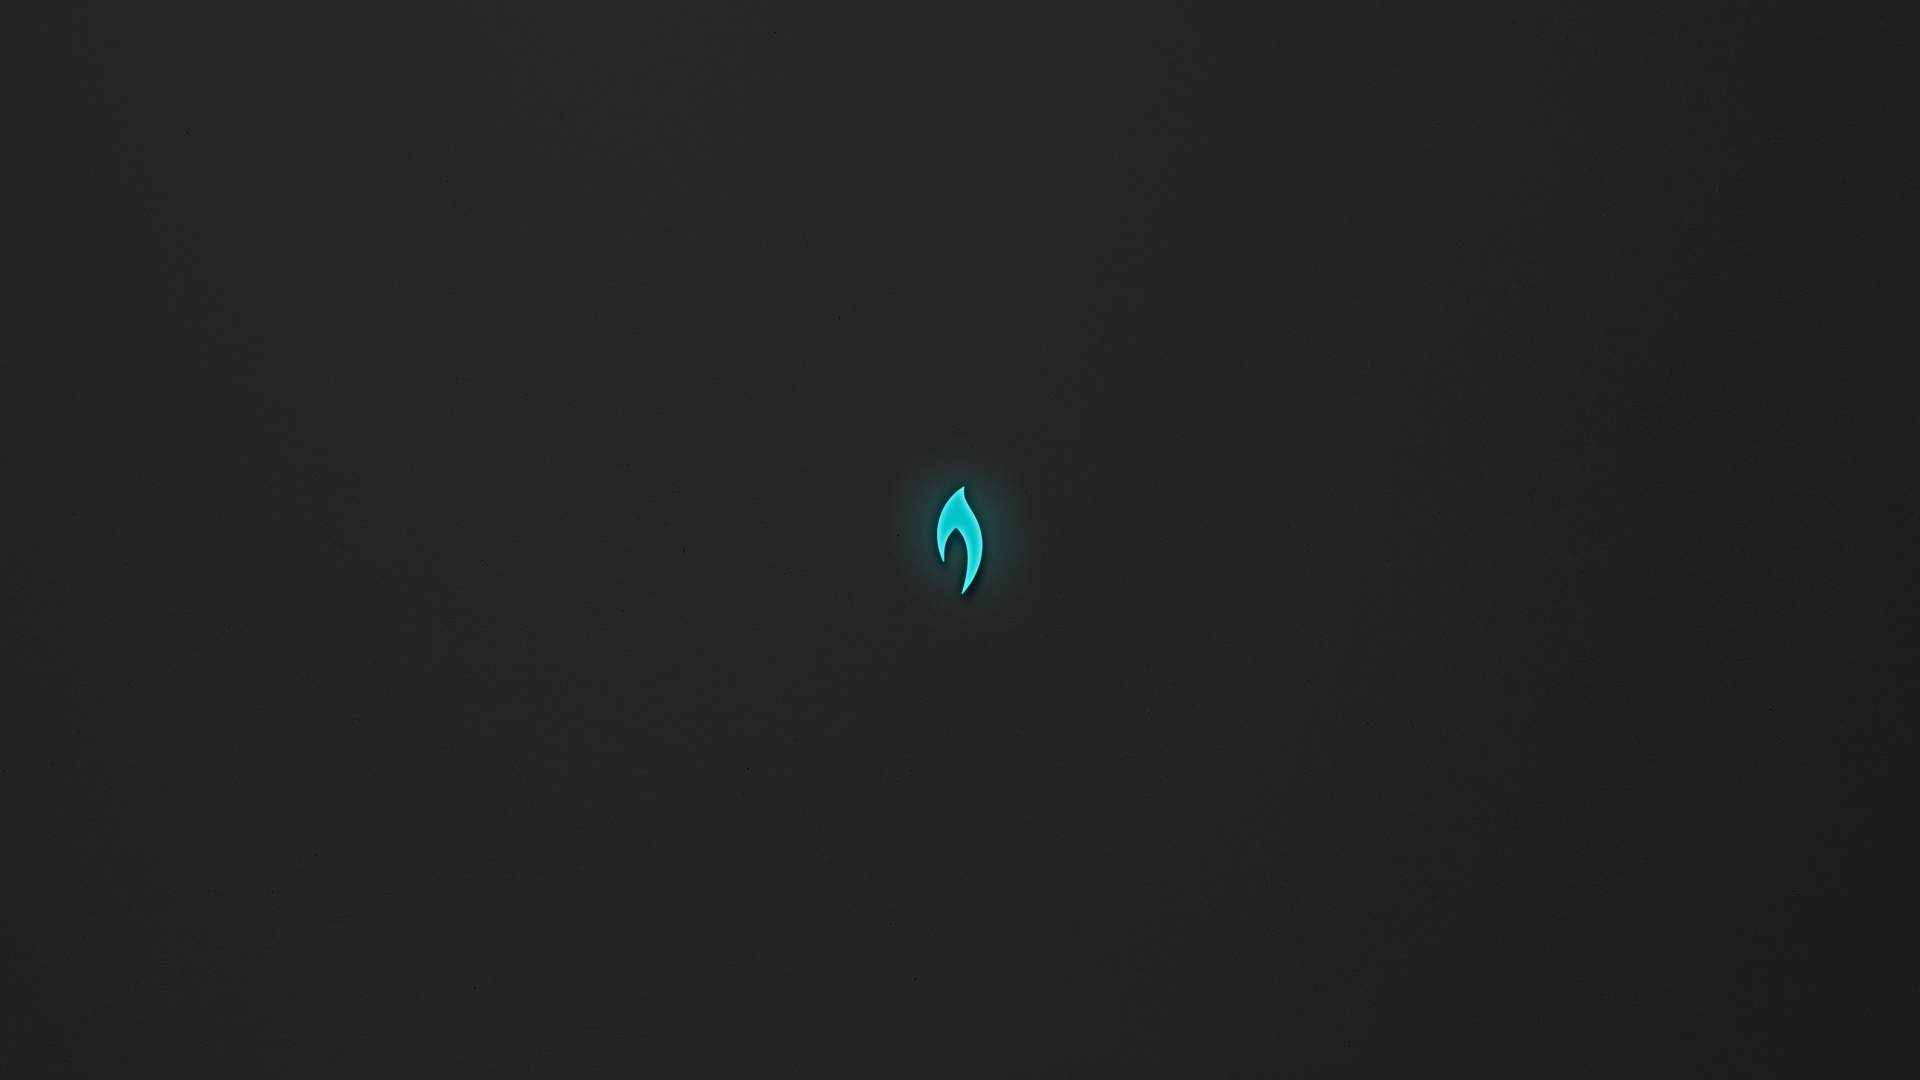 BL Neon by NixiePro